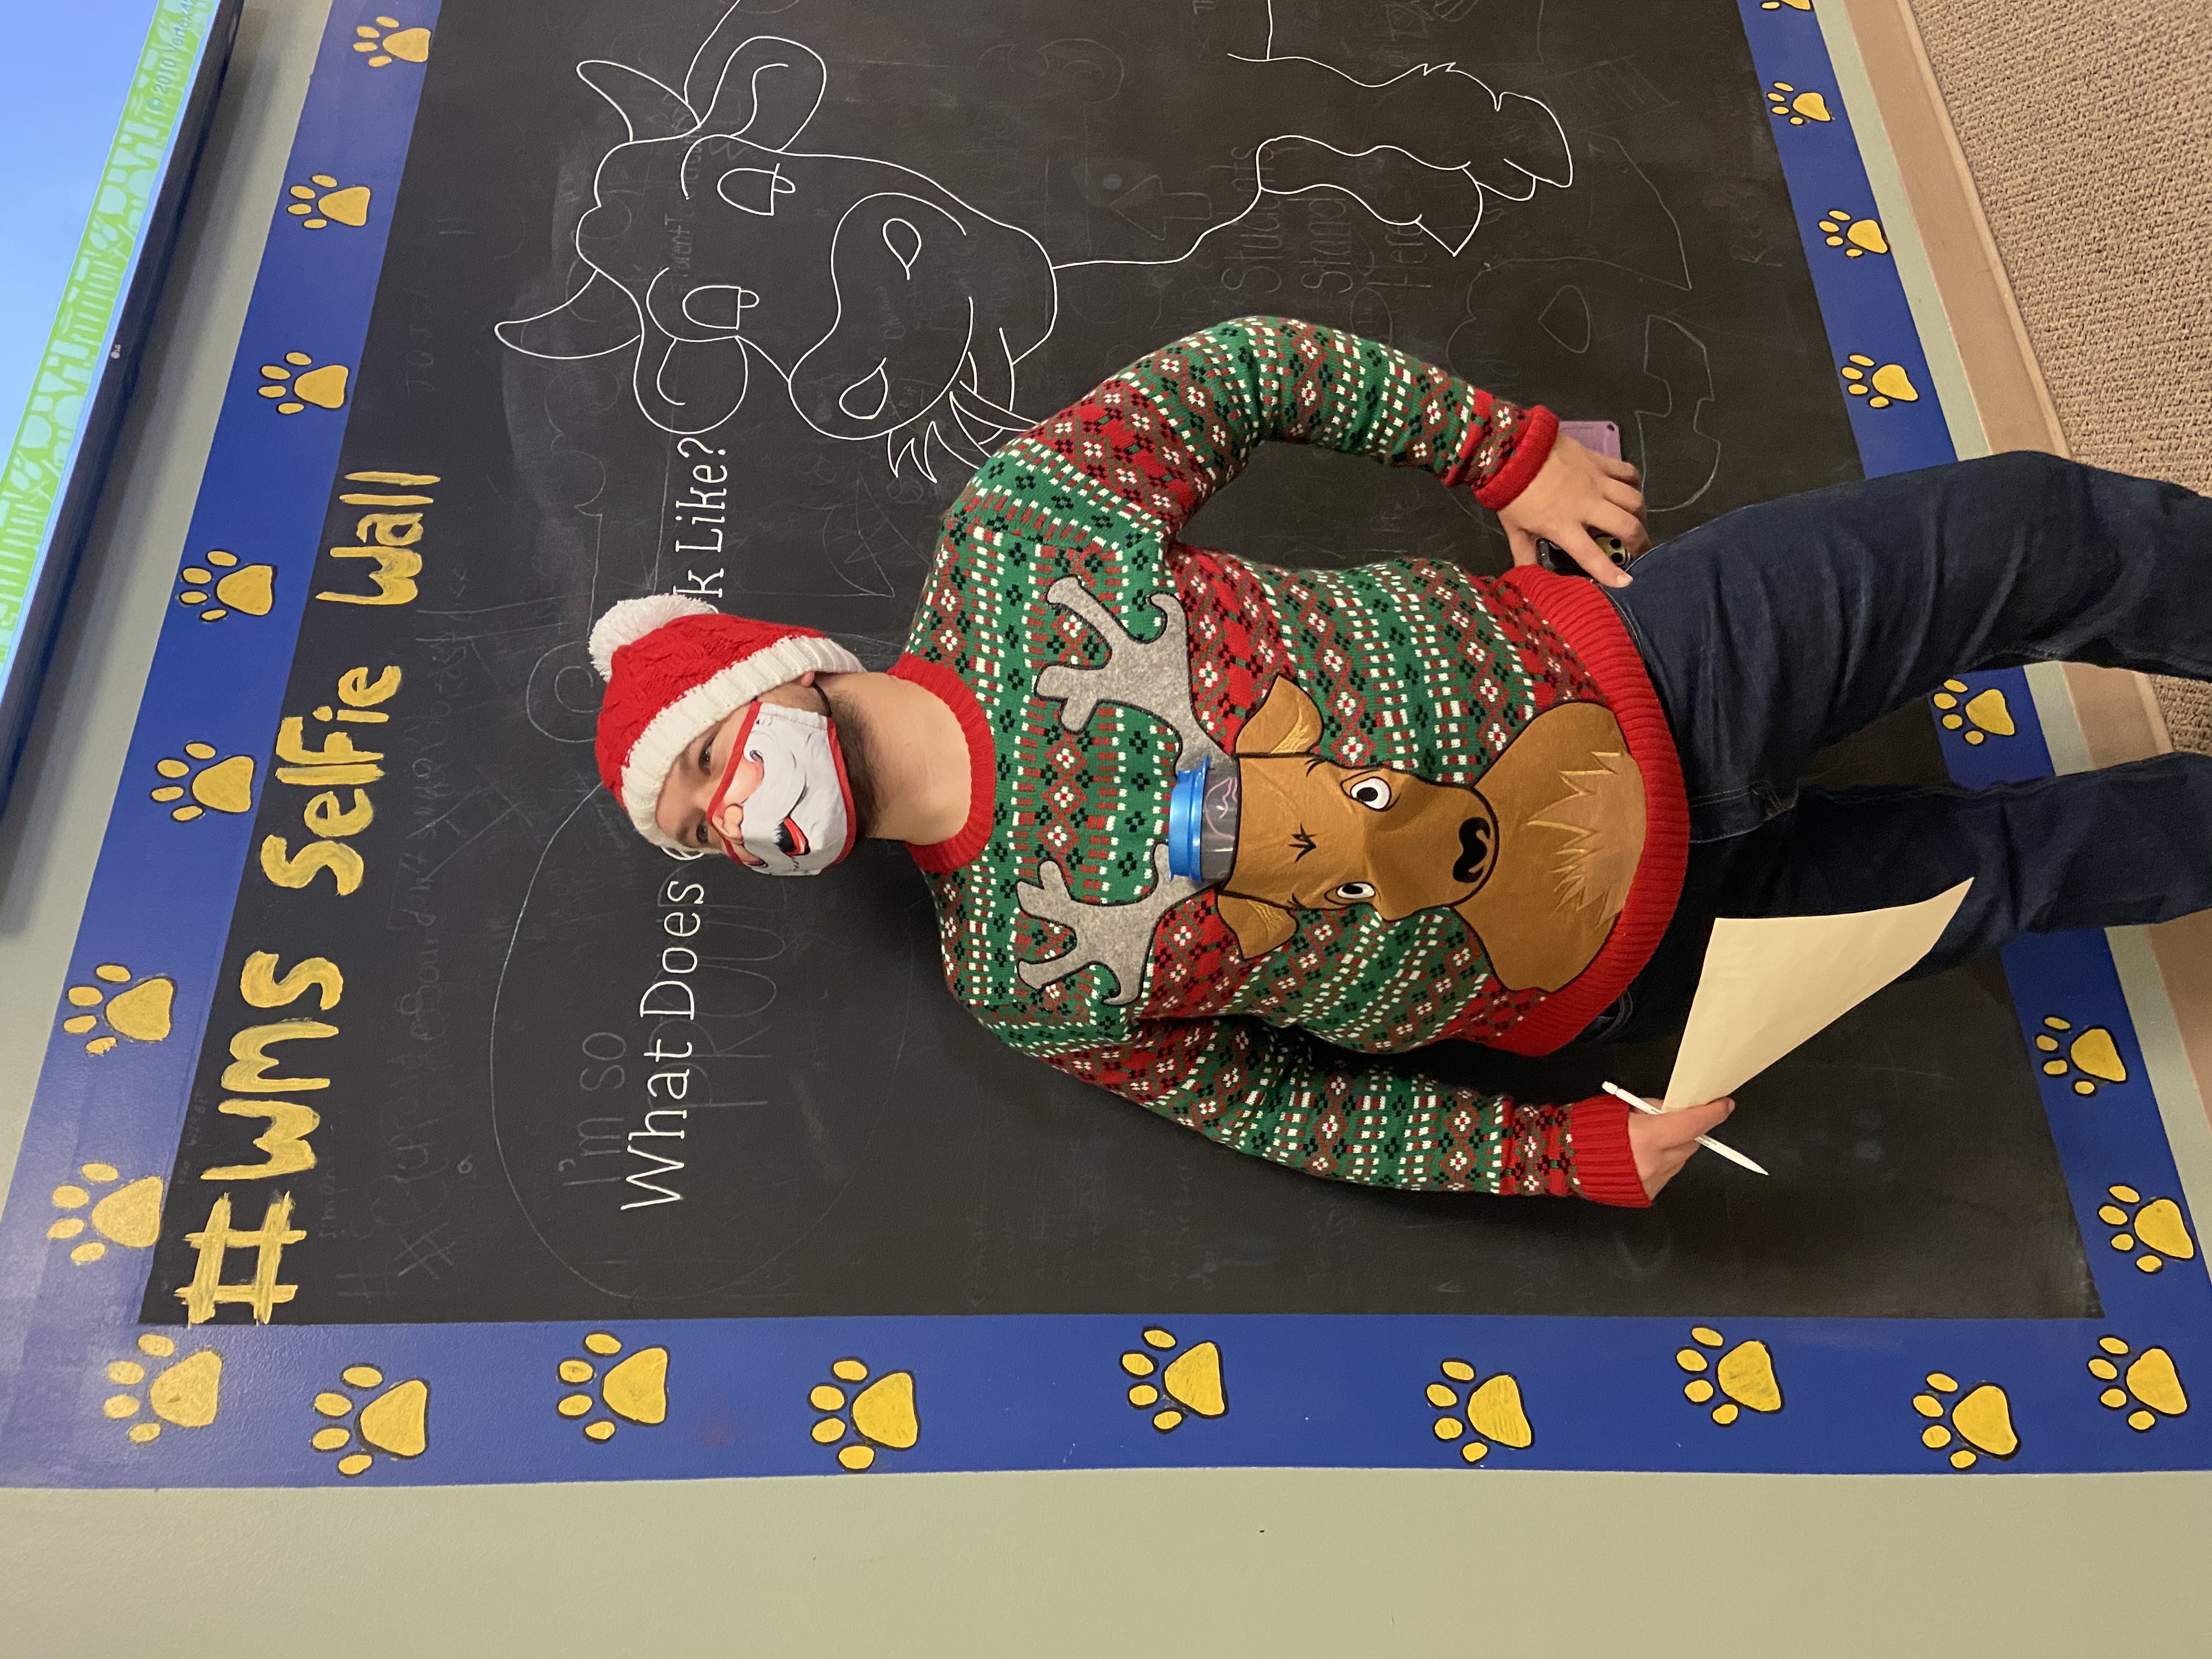 Substitute teacher, Sawyer took home 2nd place in the WMS Ugly Sweater Contest.